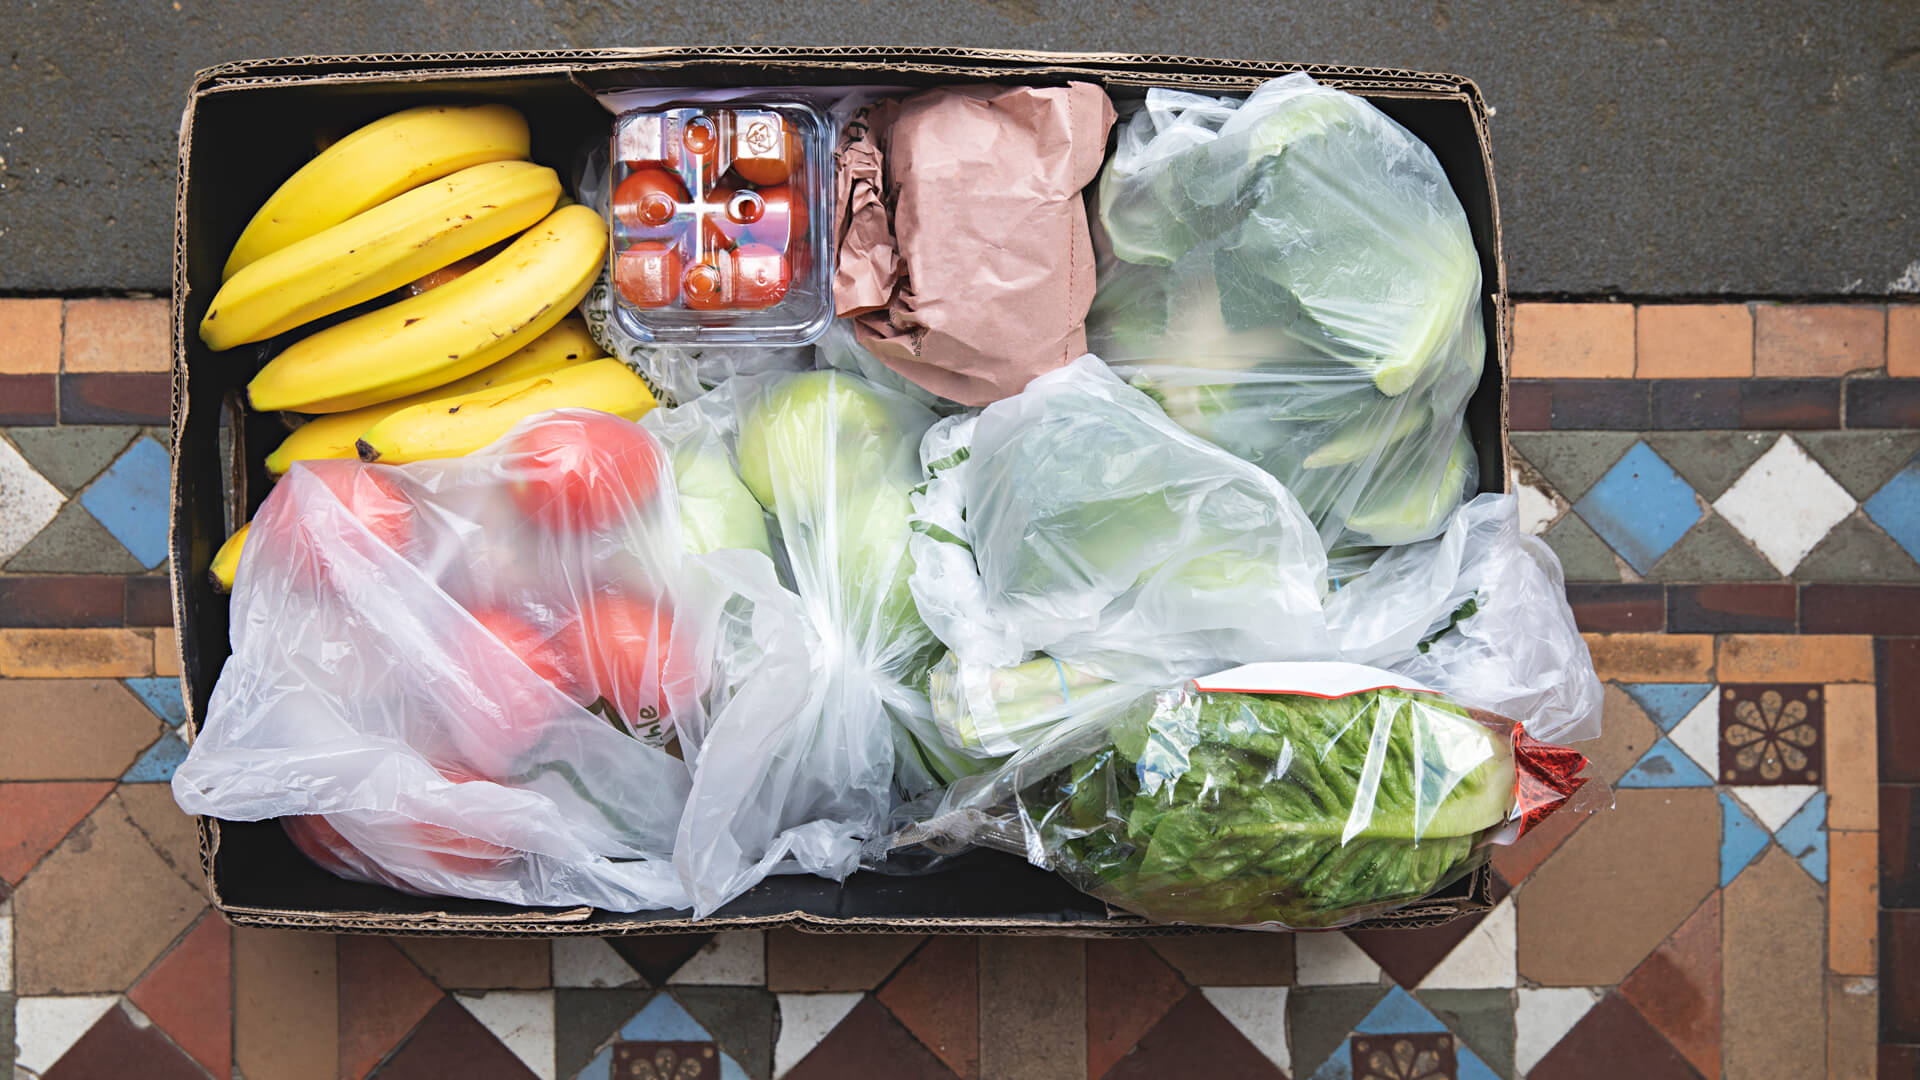 Overhead view of a box of fruit and vegetables is hand delivered and left on the doorstep.